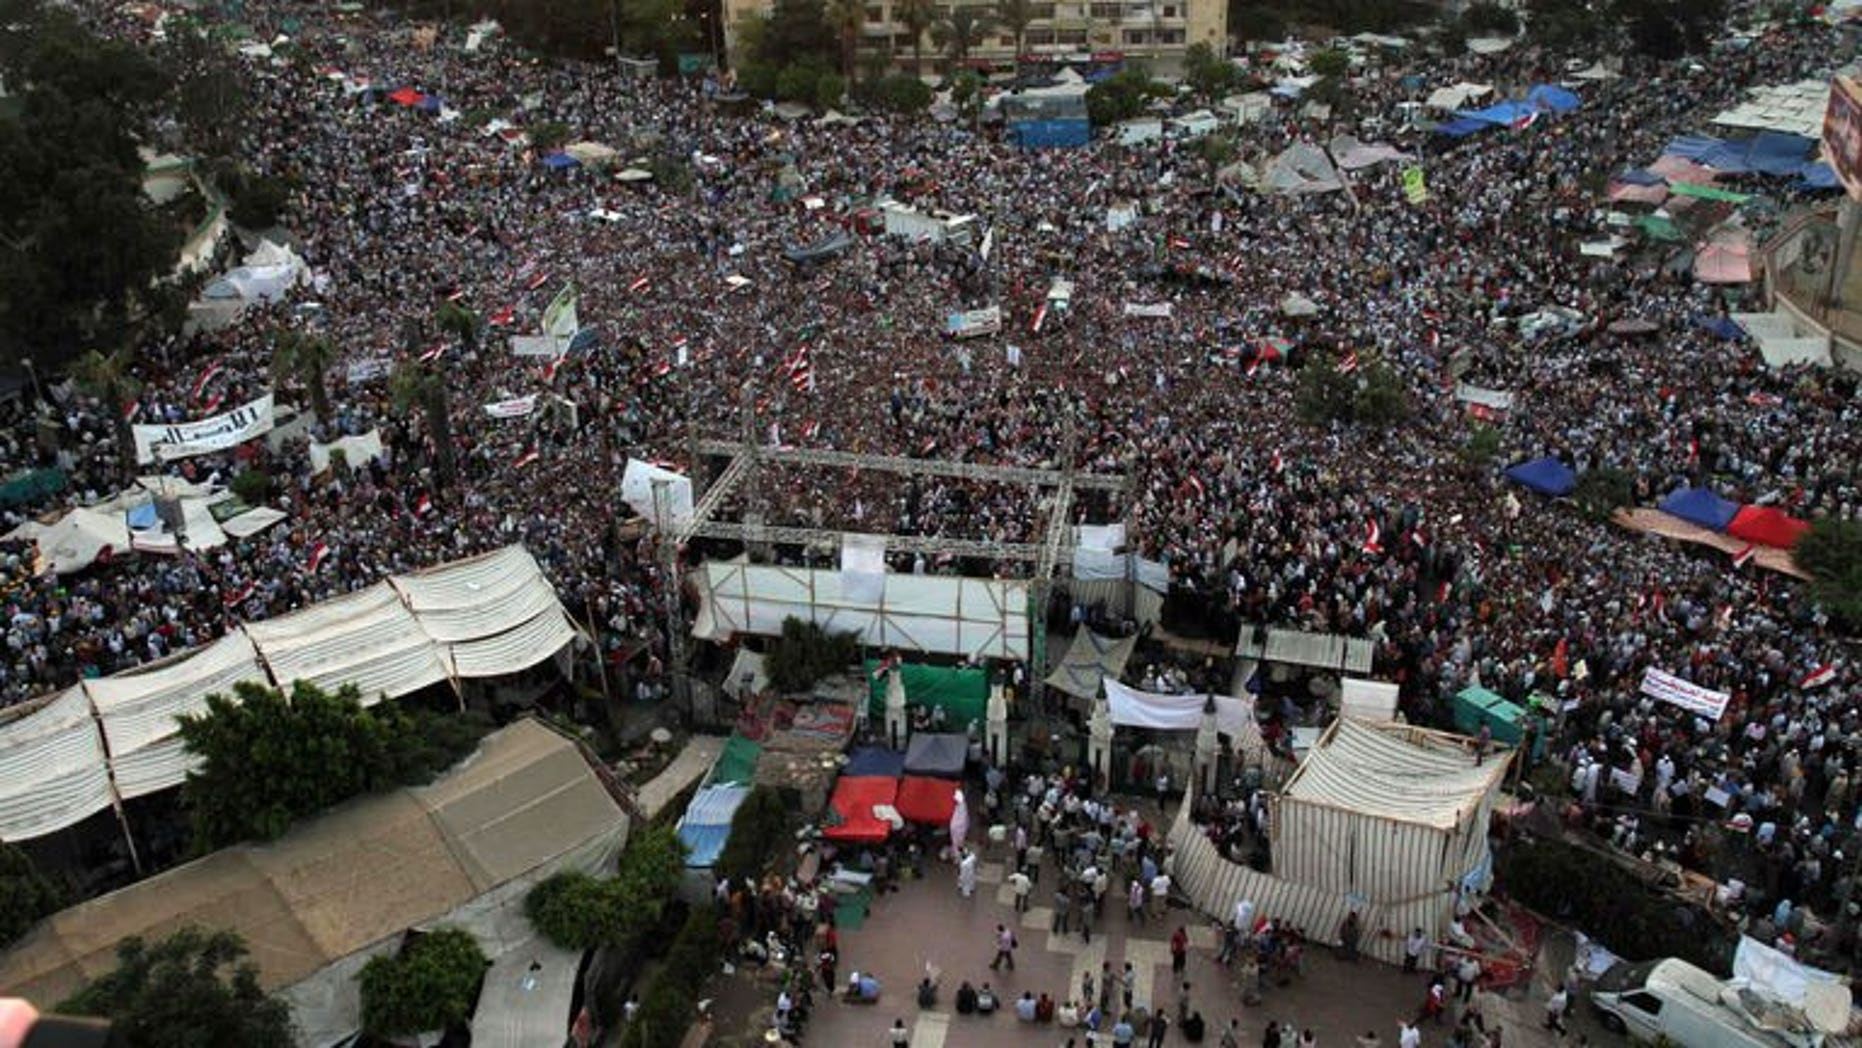 Egyptian supporters of President Mohamed Morsi gather in Rabaa el-Aadawia district of cairo on July 2, 2013. Britain warned its nationals against all but essential travel to most of Egypt after the army threatened to intervene to quell ongoing protests against President Mohamed Morsi.